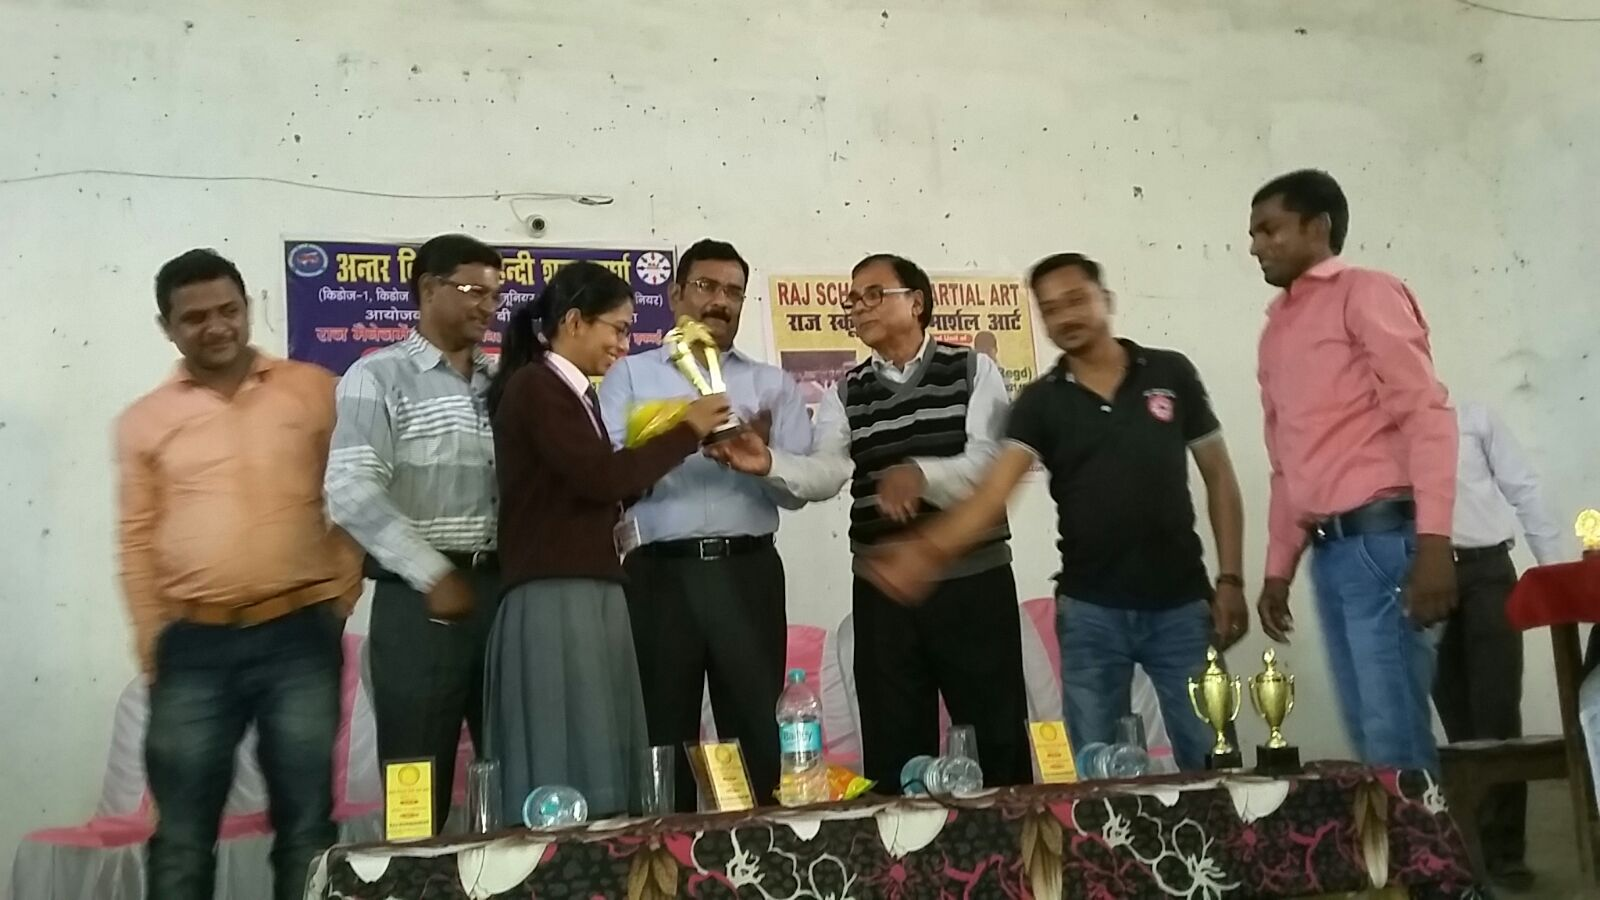 Manswi Anand from Kiran Public School receiving Champion Prize Cup by Dr.Madhepuri and SP Vikas Kumar .